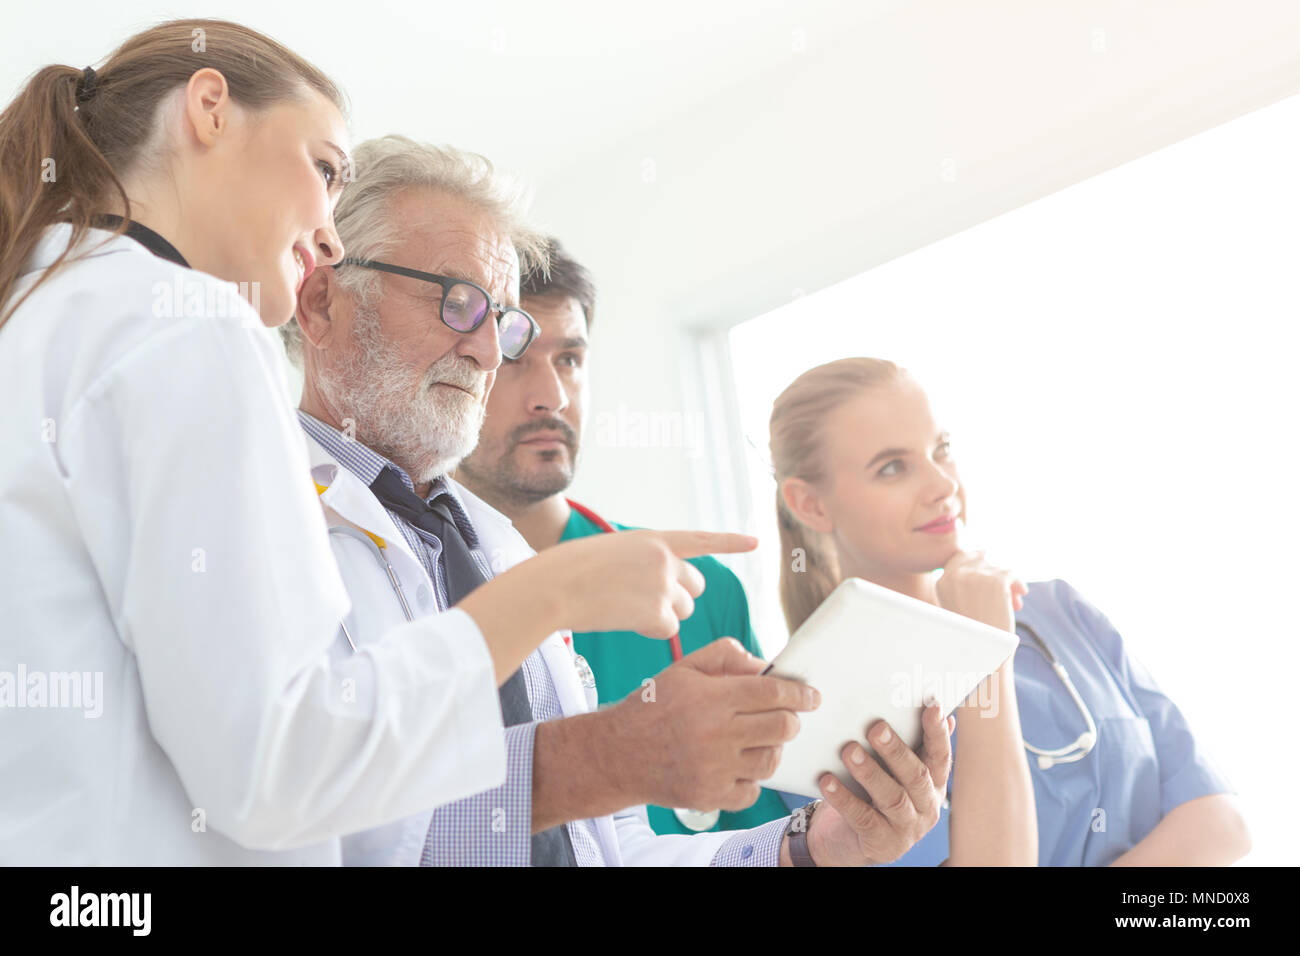 A group of doctors are using a digital tablet for discussing diagnosis and smiling while standing in front of his patient. - Stock Image